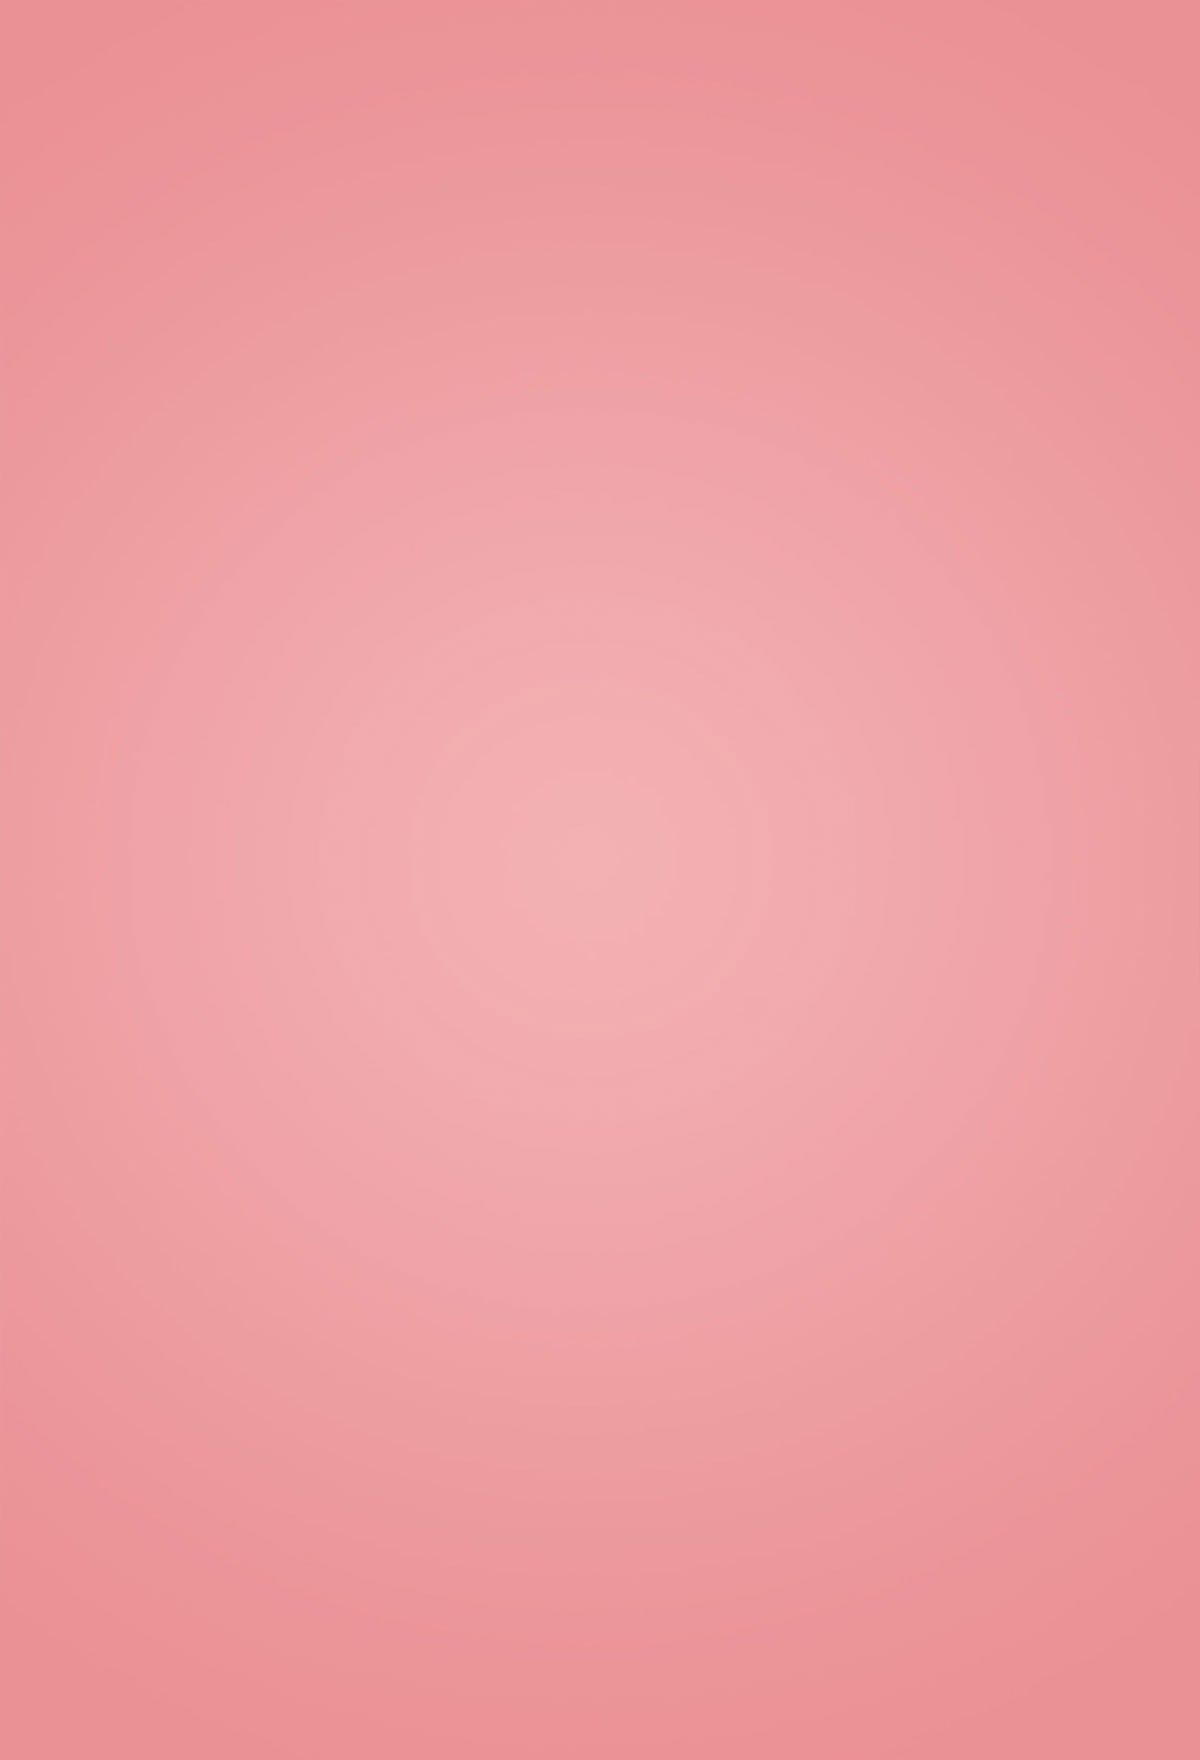 Load image into Gallery viewer, Katebackdrop£ºKate Light Pink Solid Color backdrop for Photography